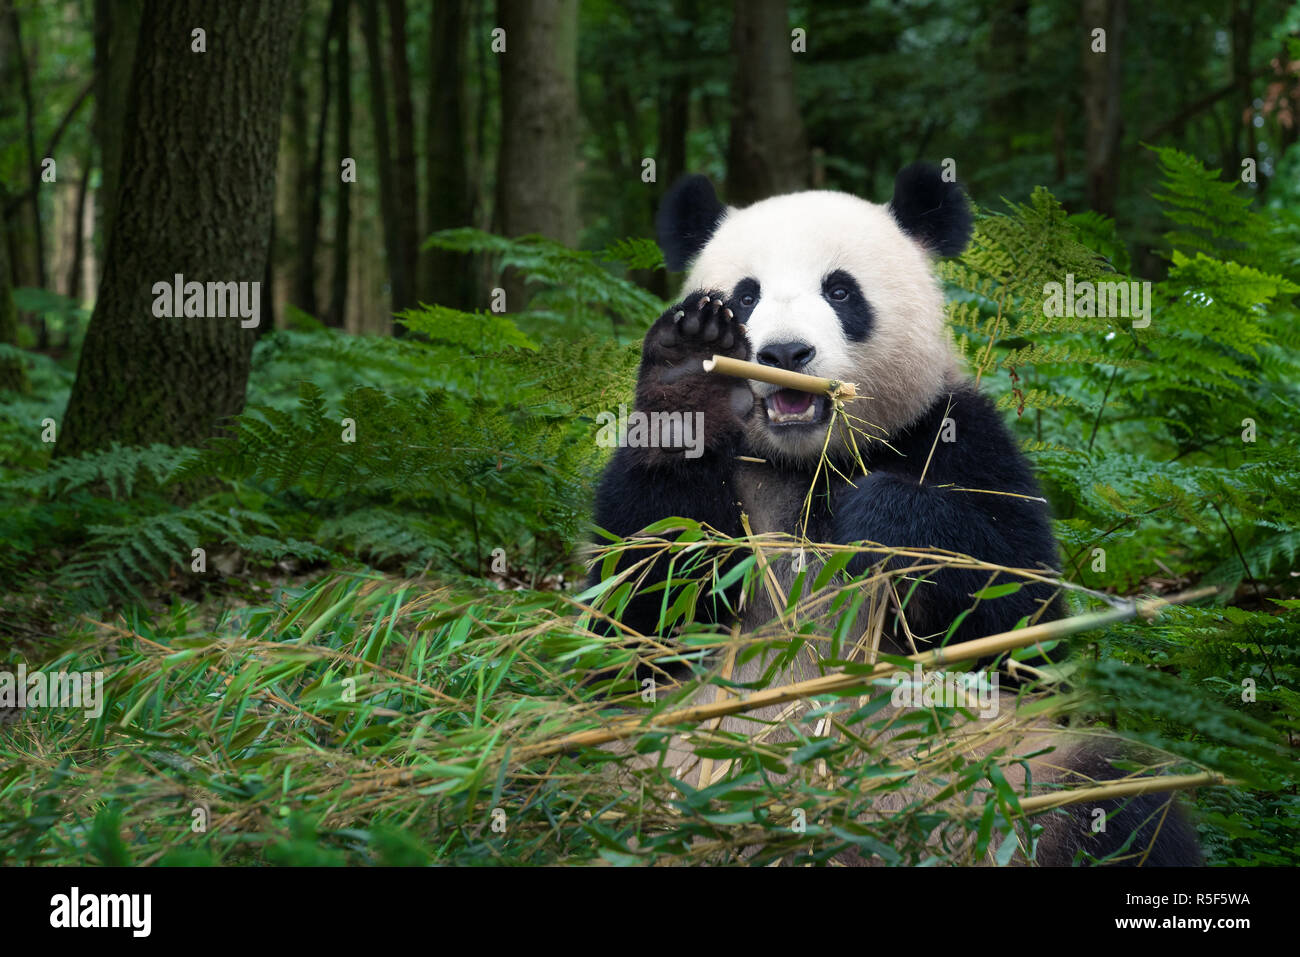 panda bear is sitting in the forest eating bamboo - Stock Image